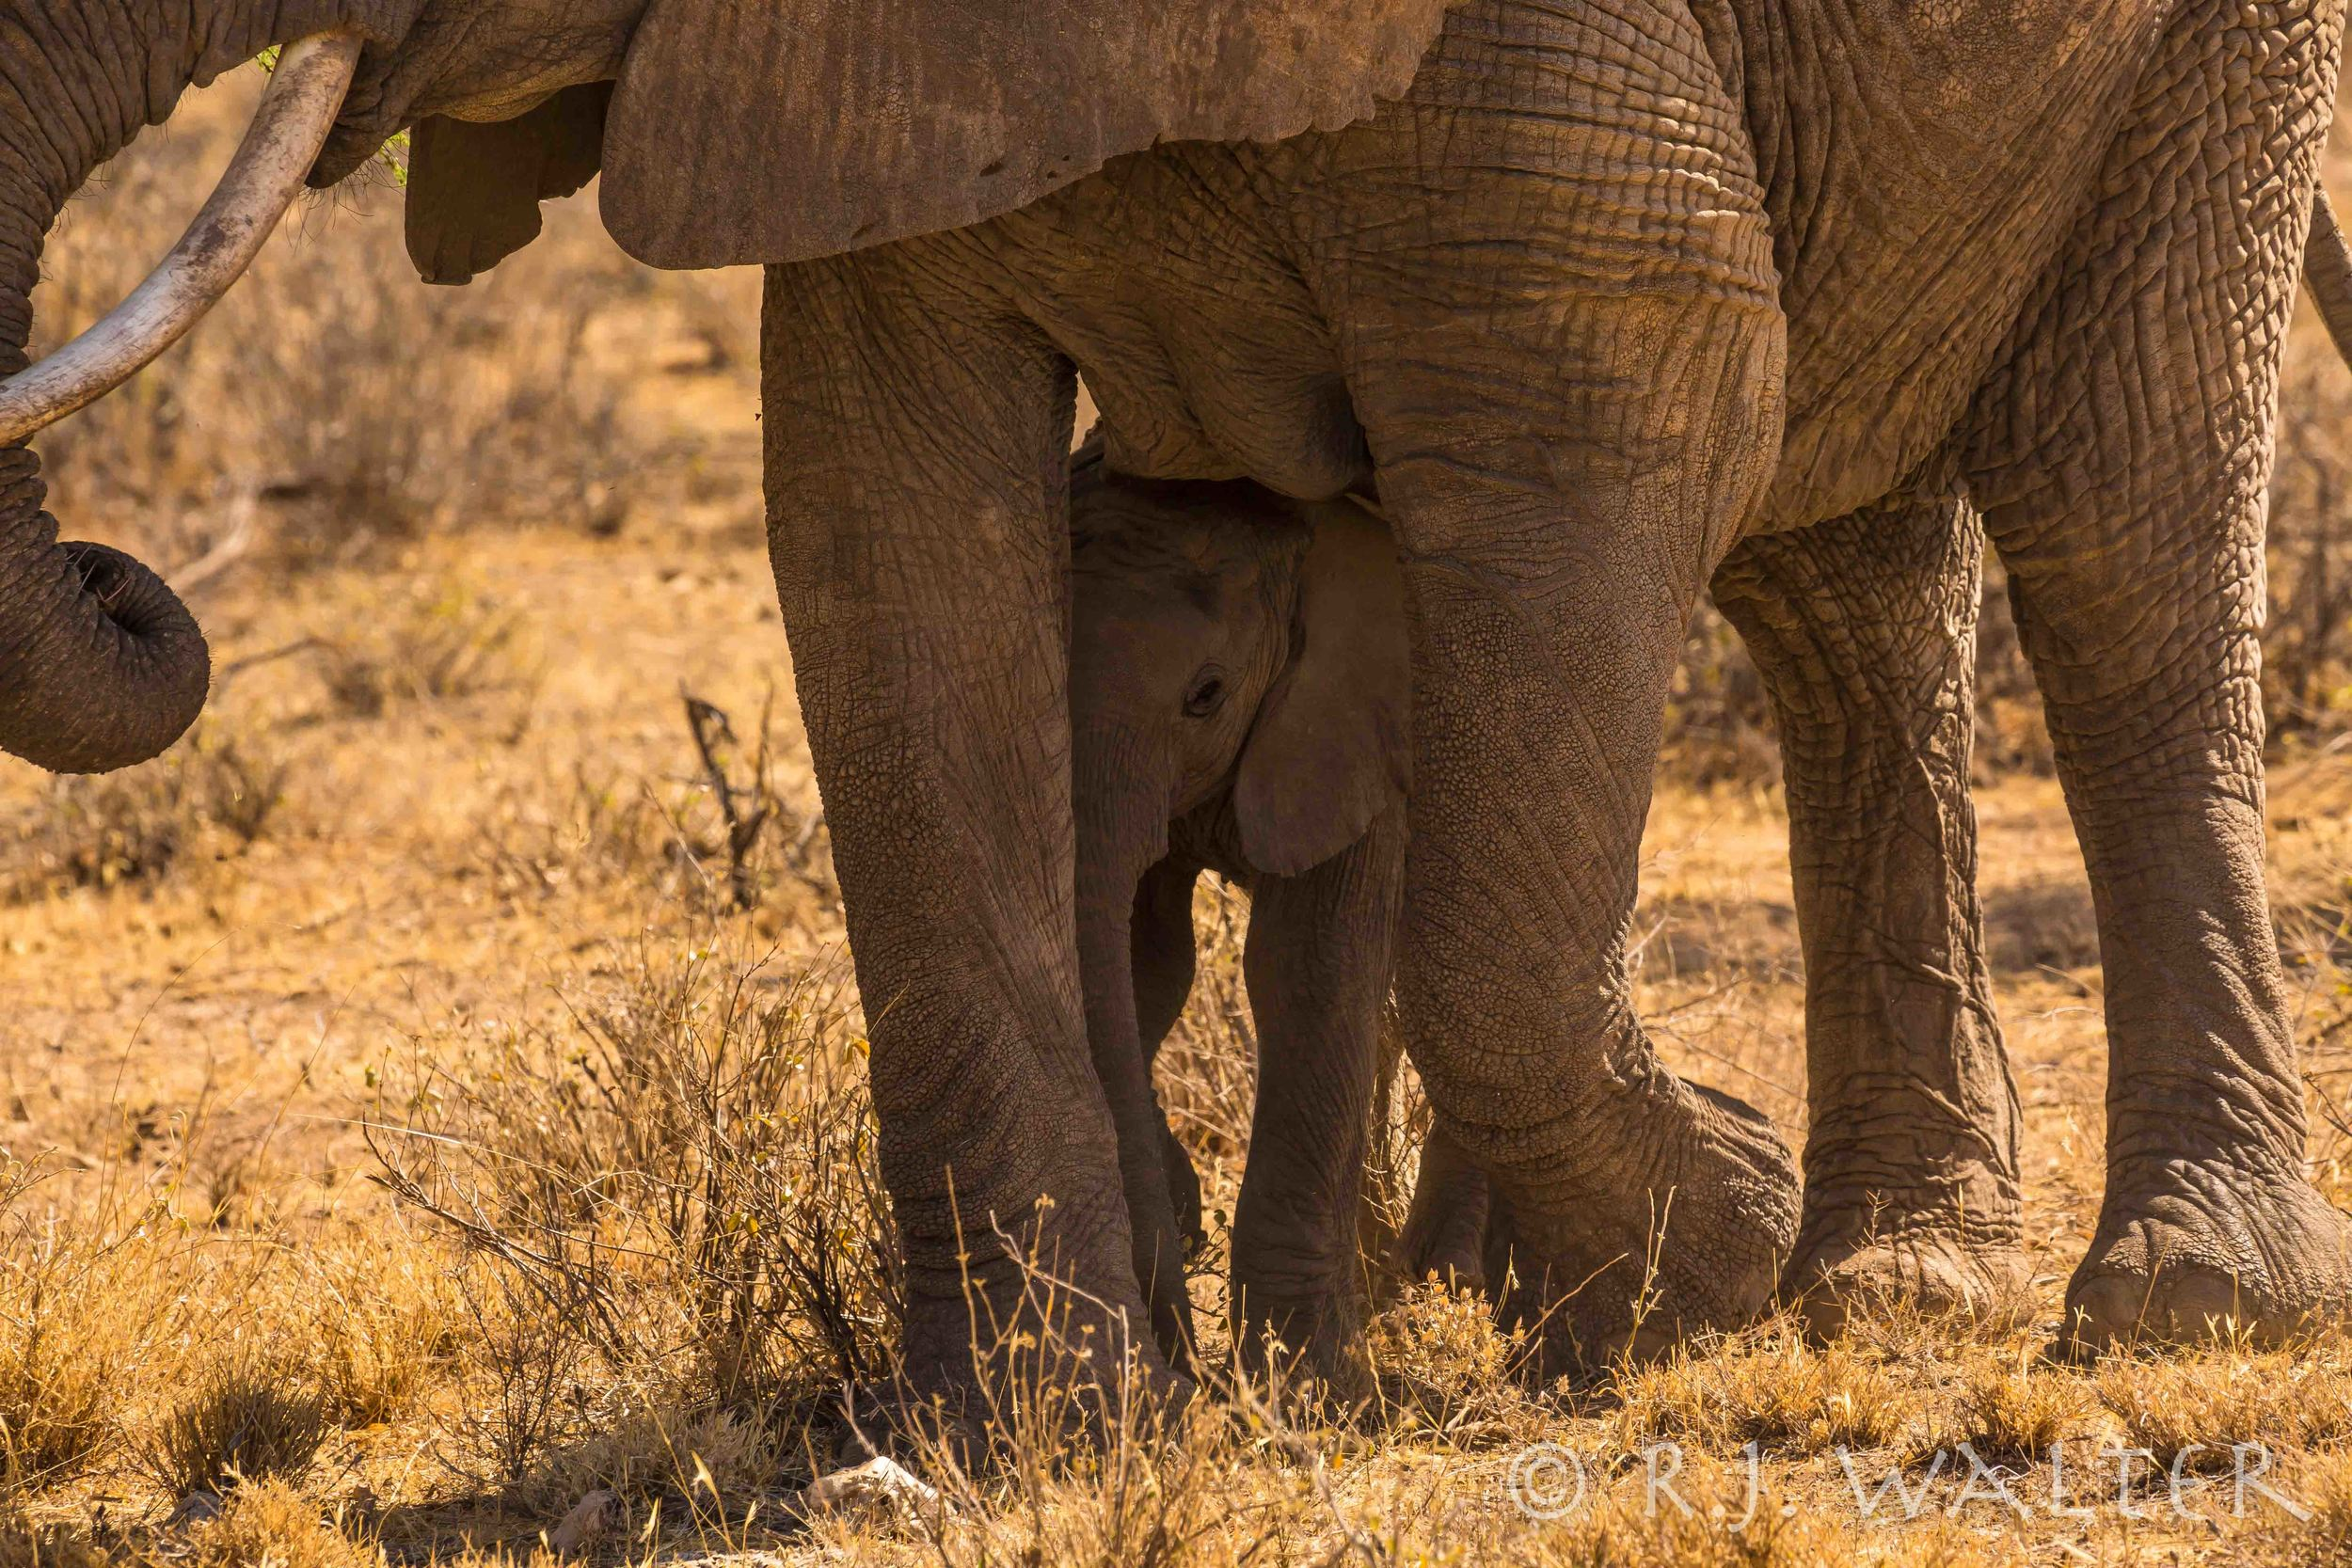 RJWalter_Save The Elephants_Samburu, Kenya_March 2015-2013.jpg